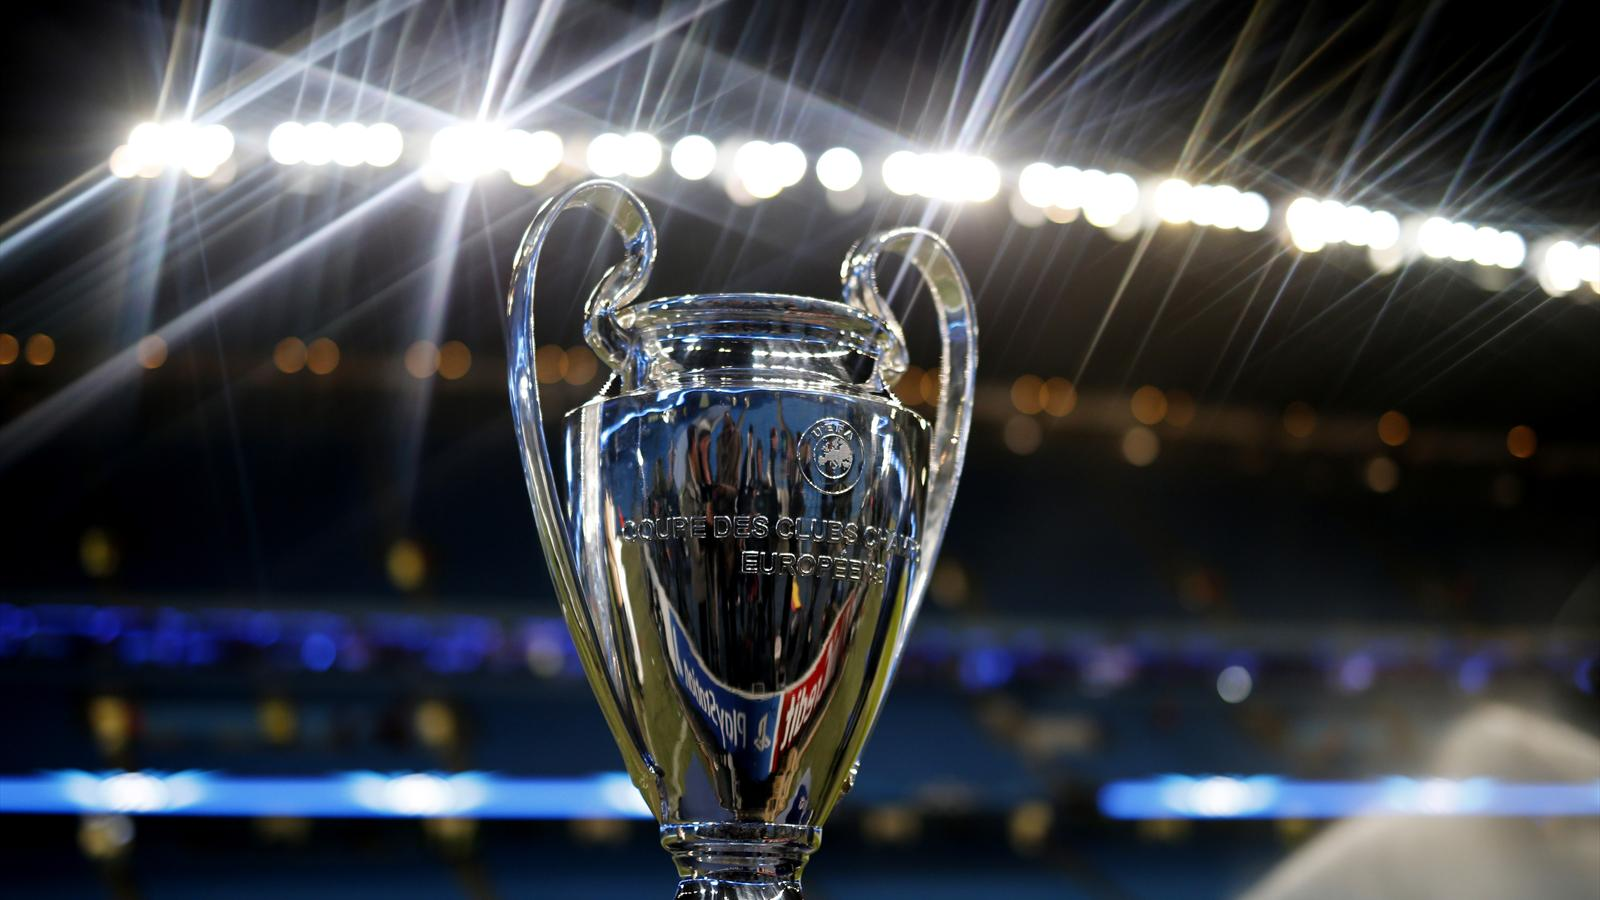 UEFAcom is the official site of UEFA the Union of European Football Associations and the governing body of football in Europe UEFA works to promote protect and